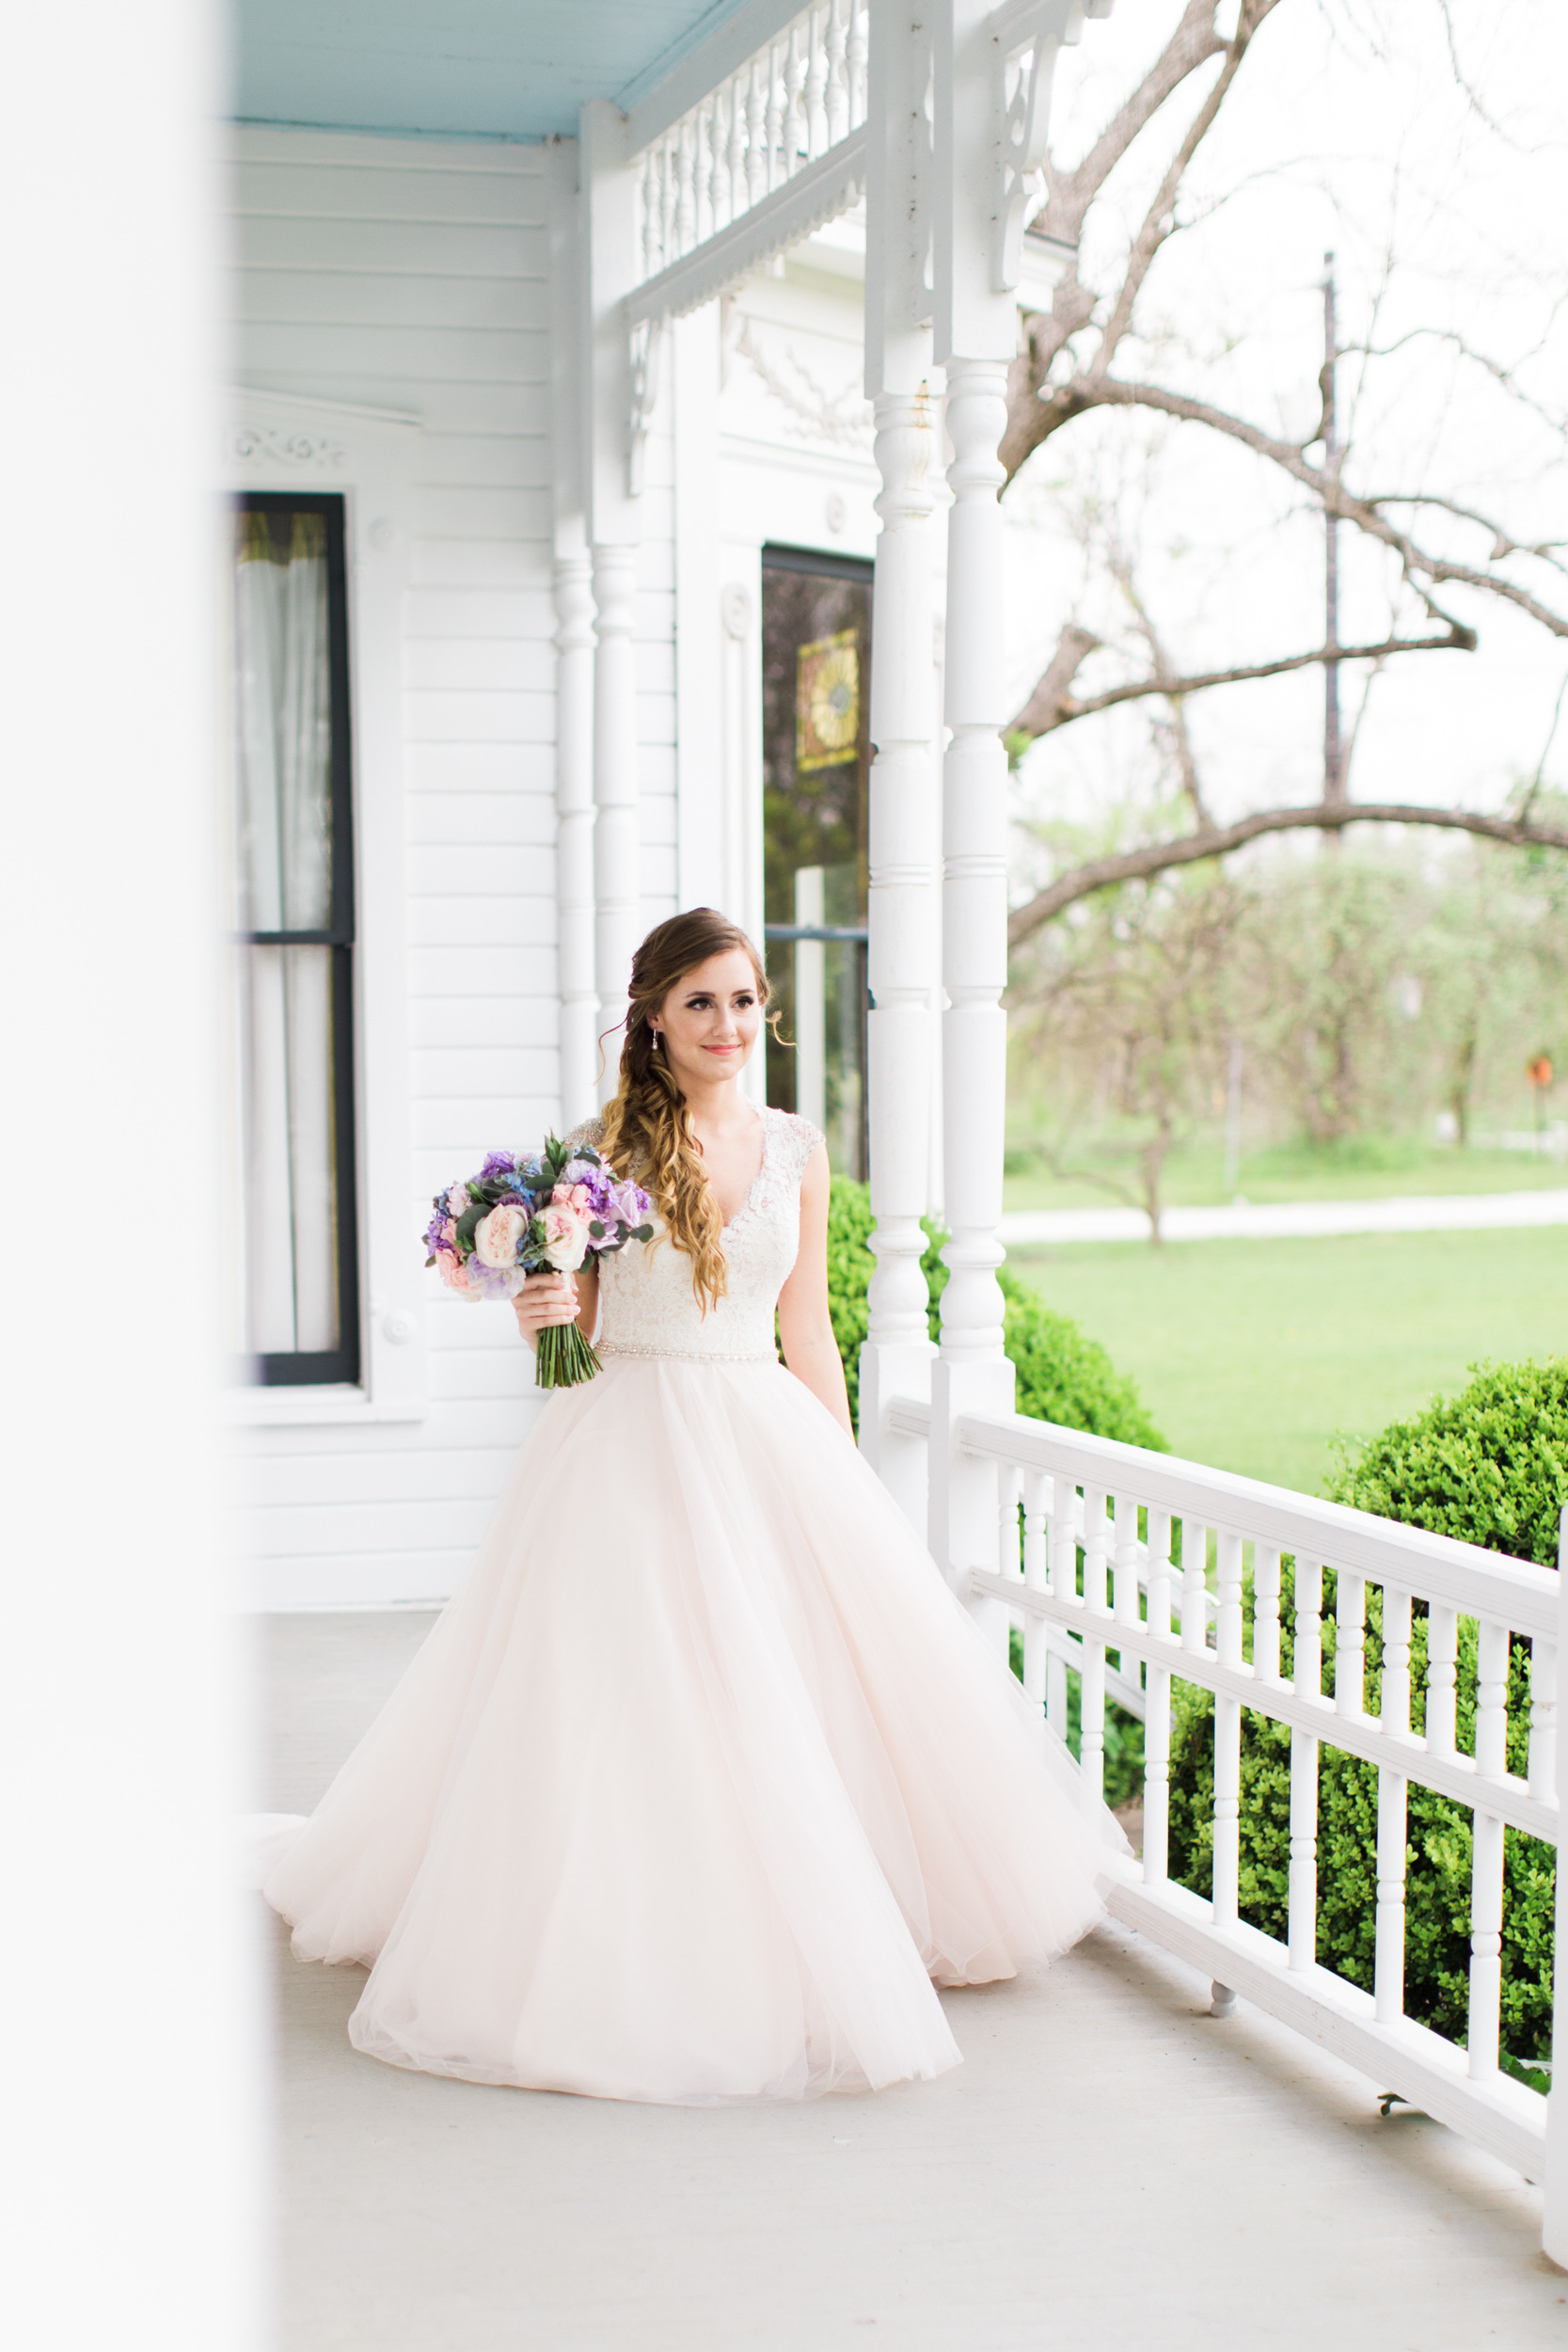 Barr_Mansion_Wedding-21.JPG